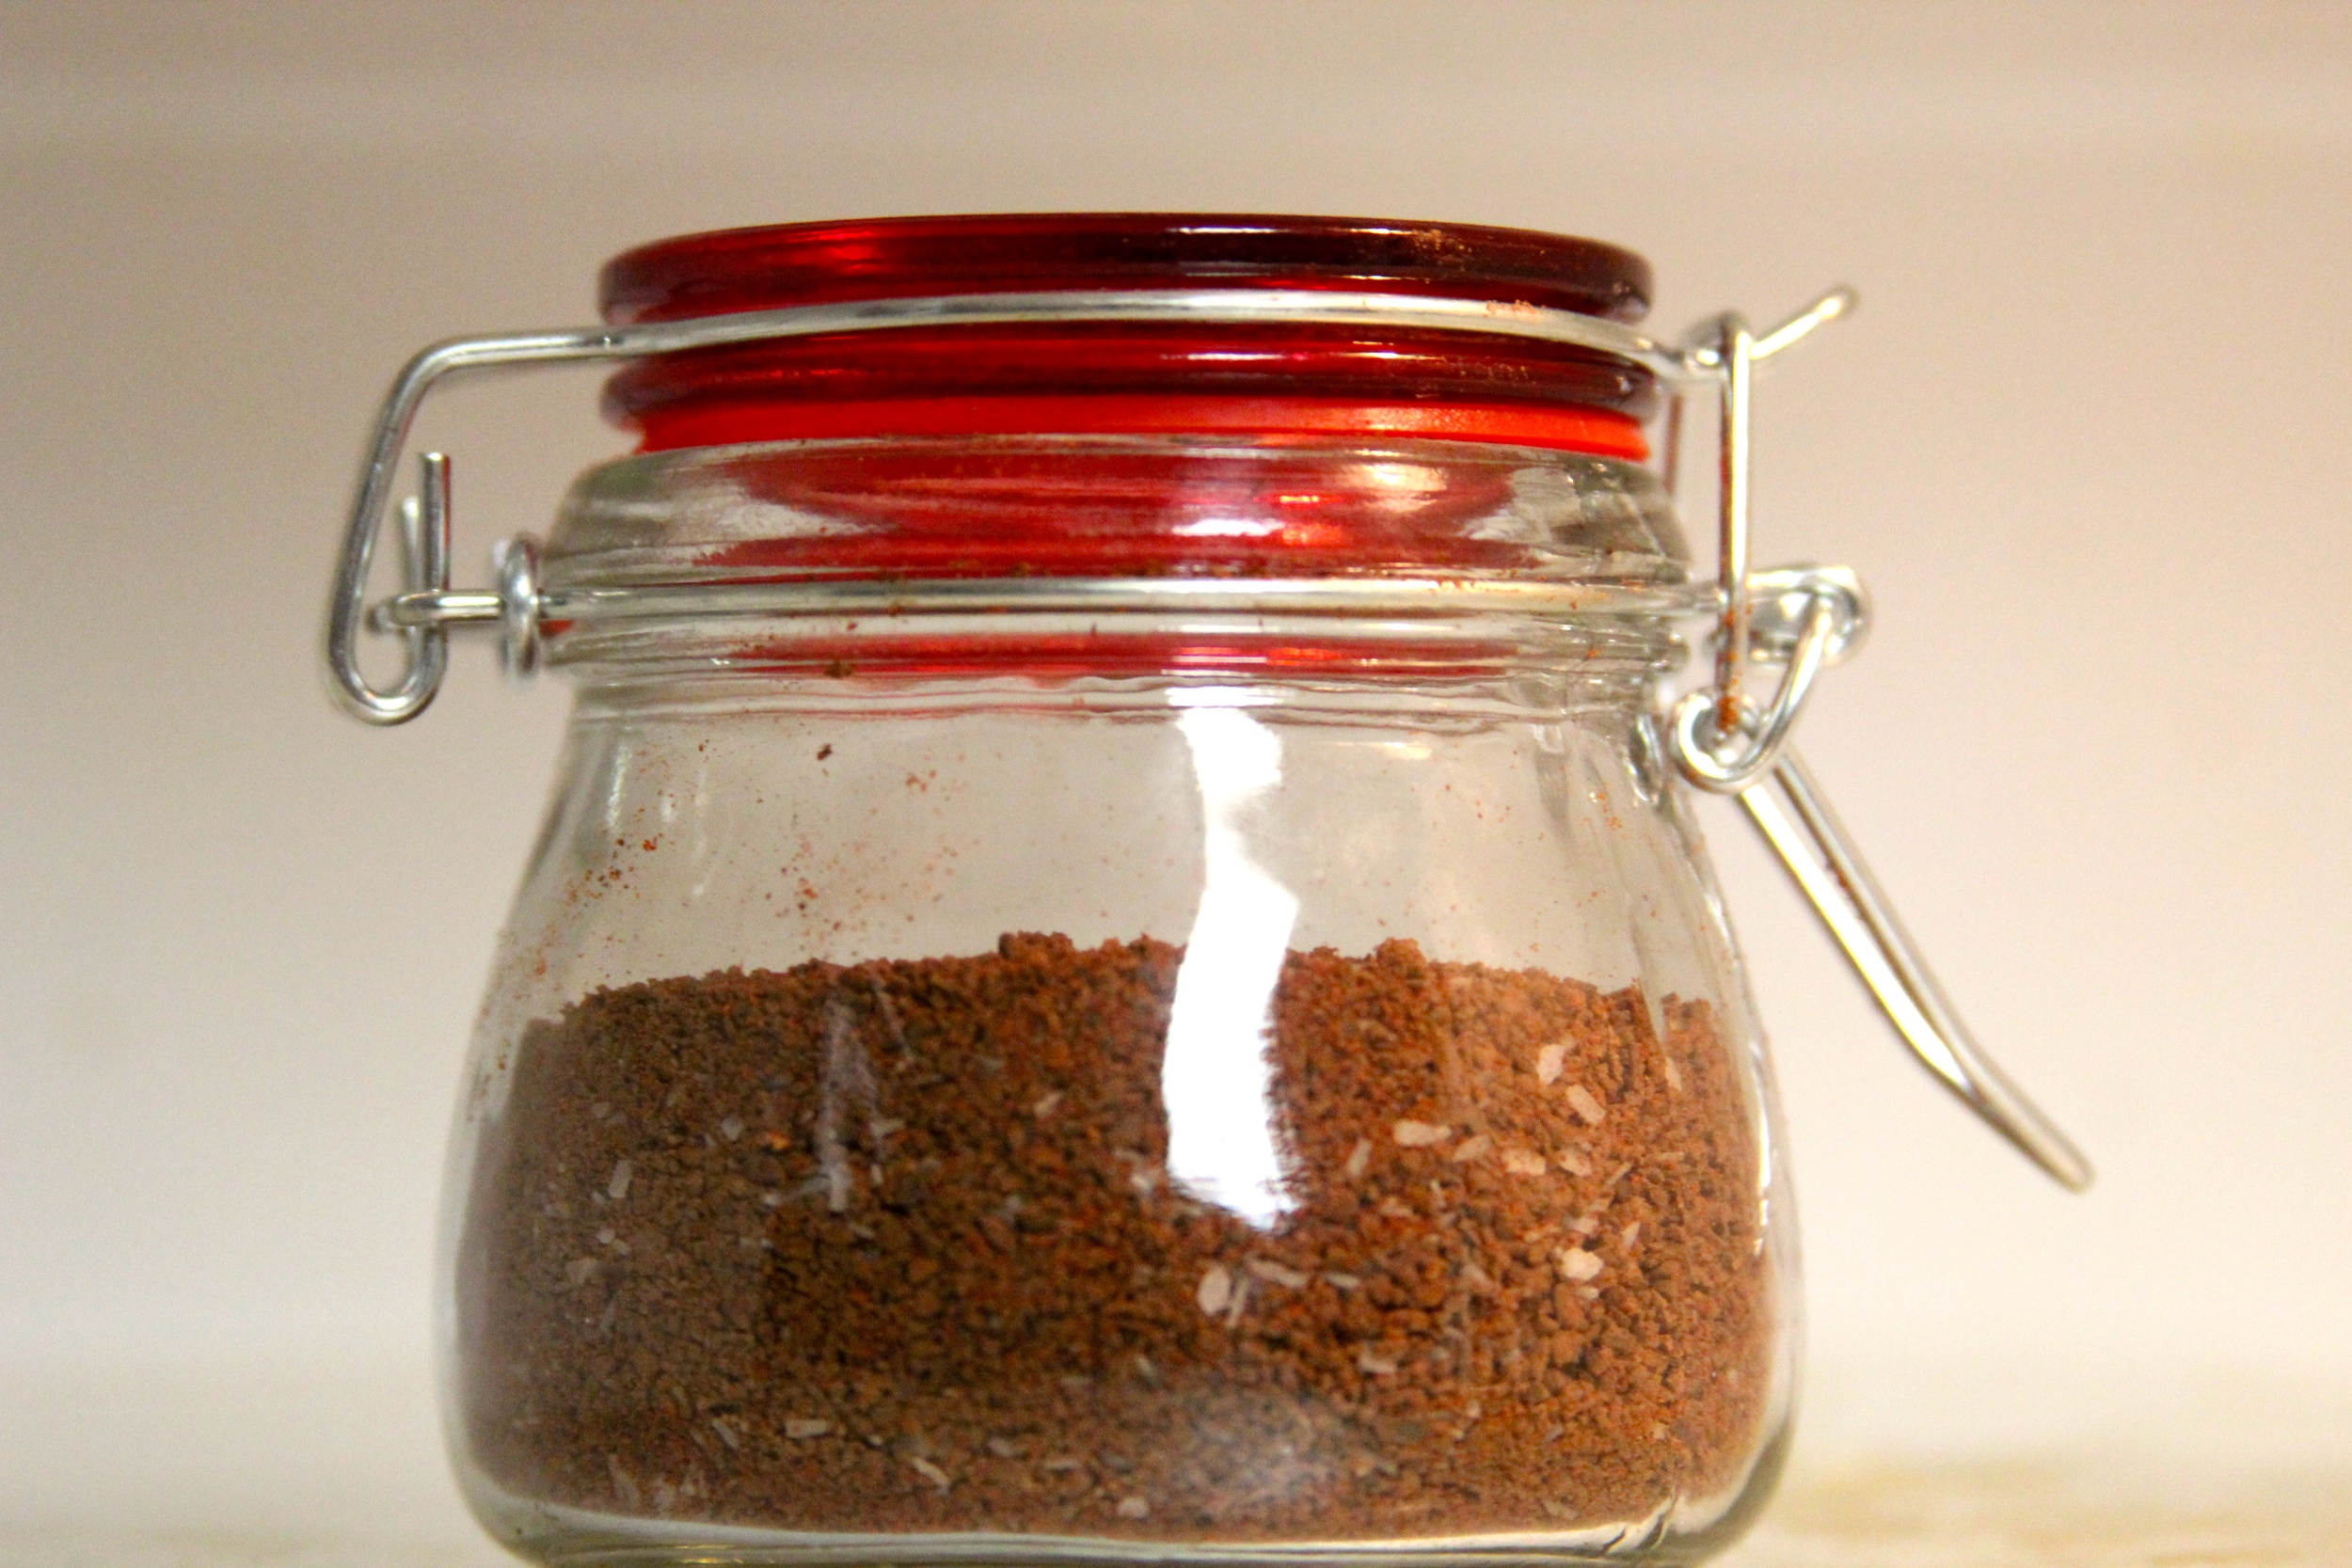 Coffee, Cocoa, and Cinnamon Dry Rub